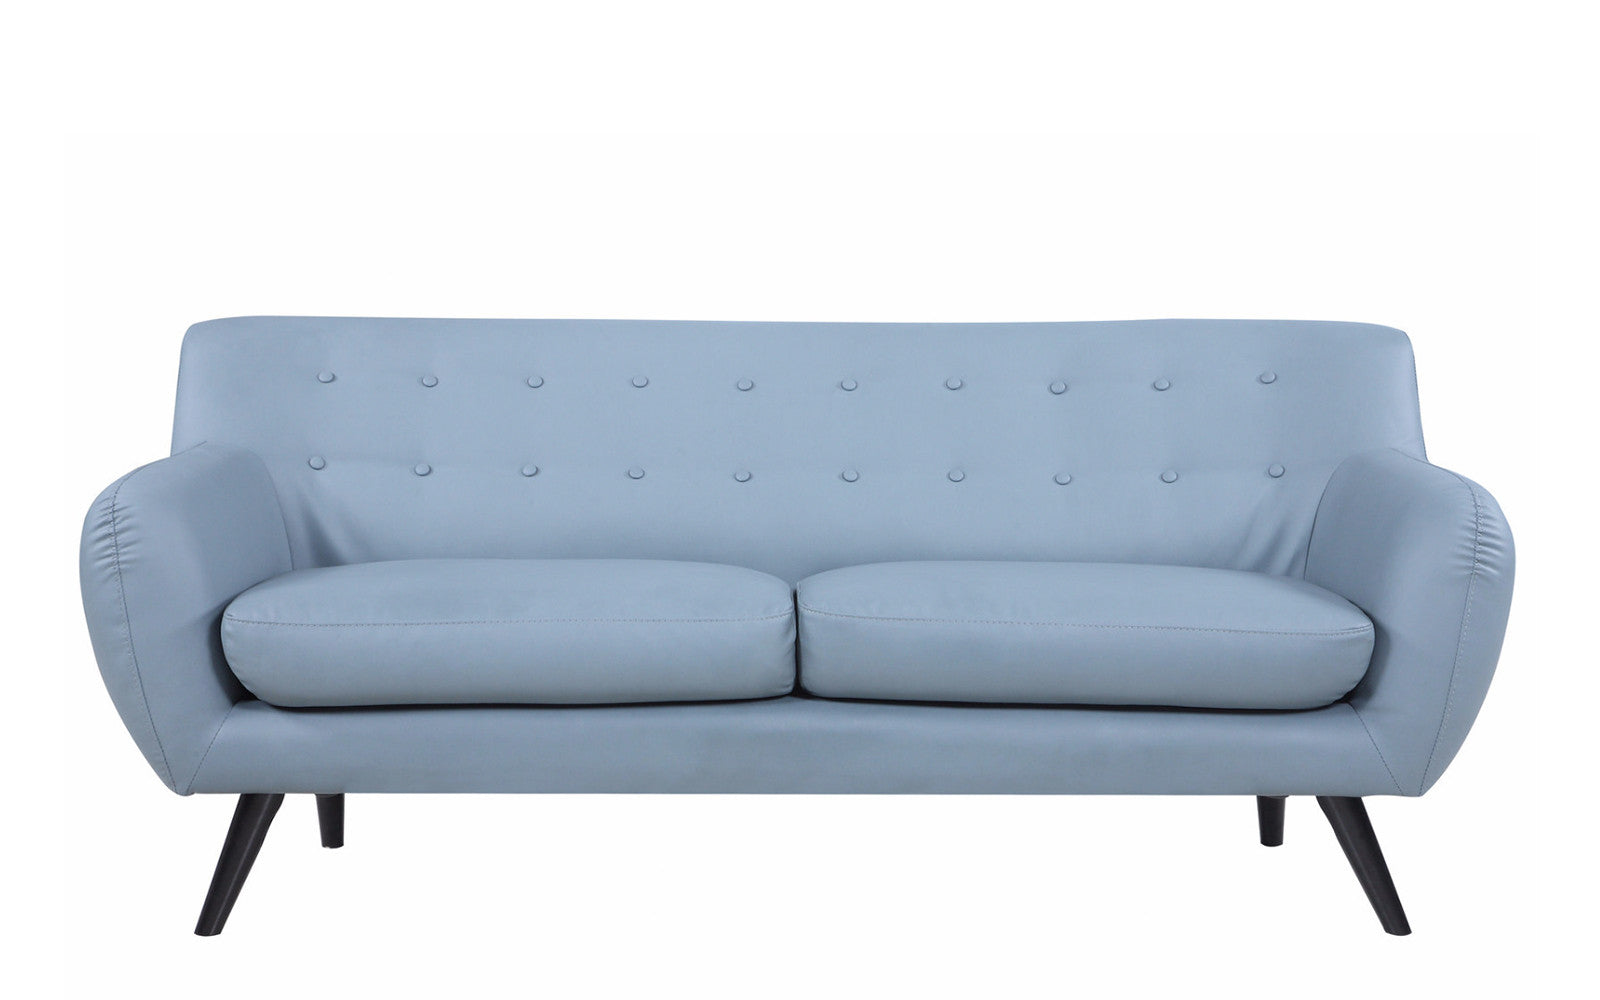 ... Nico Mid Century Modern Bonded Leather Sofa In Grey ...